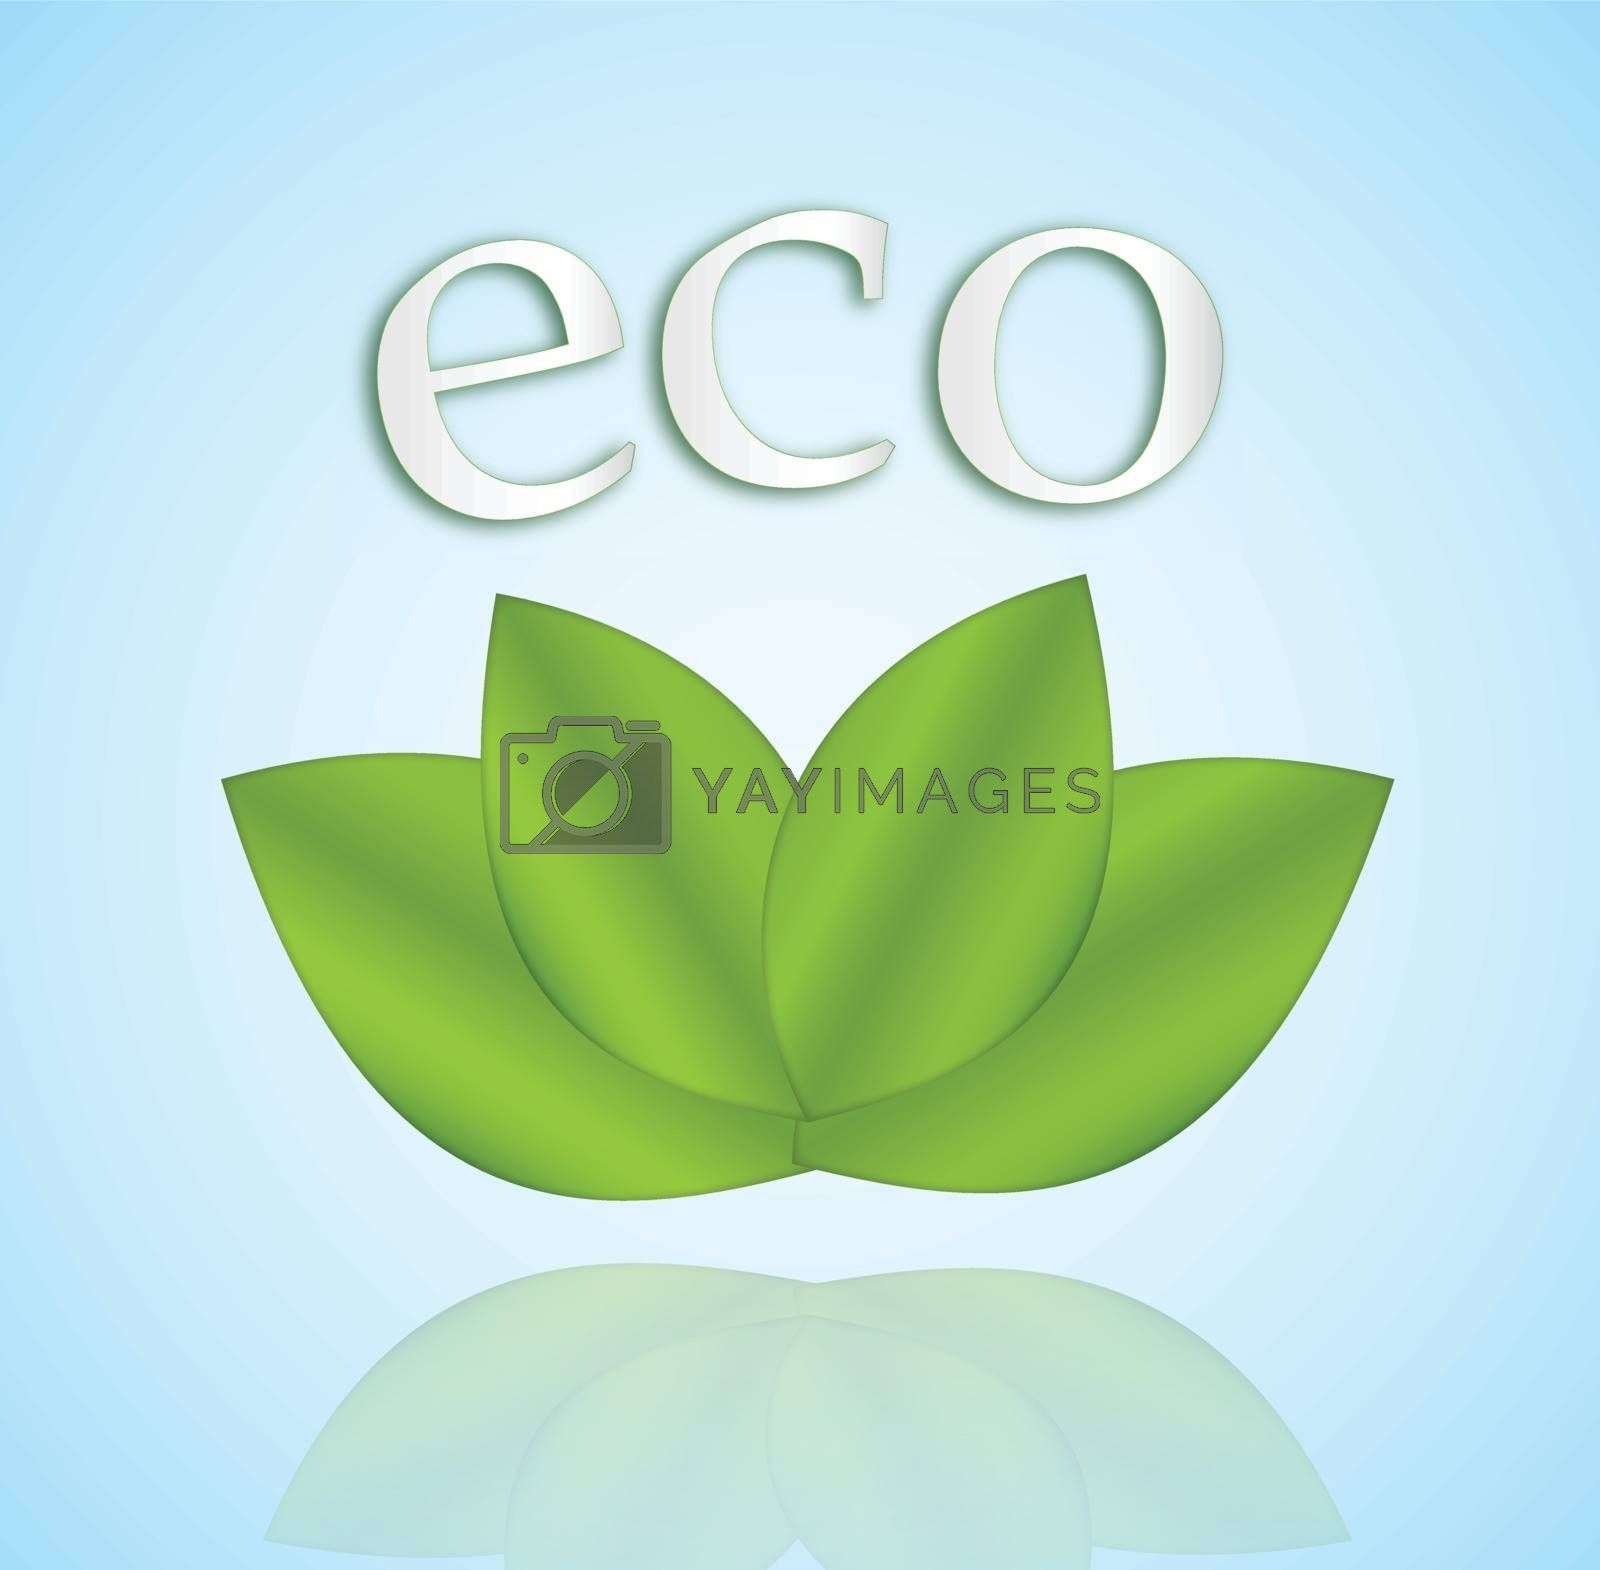 Four leaves and the word 'eco' over them